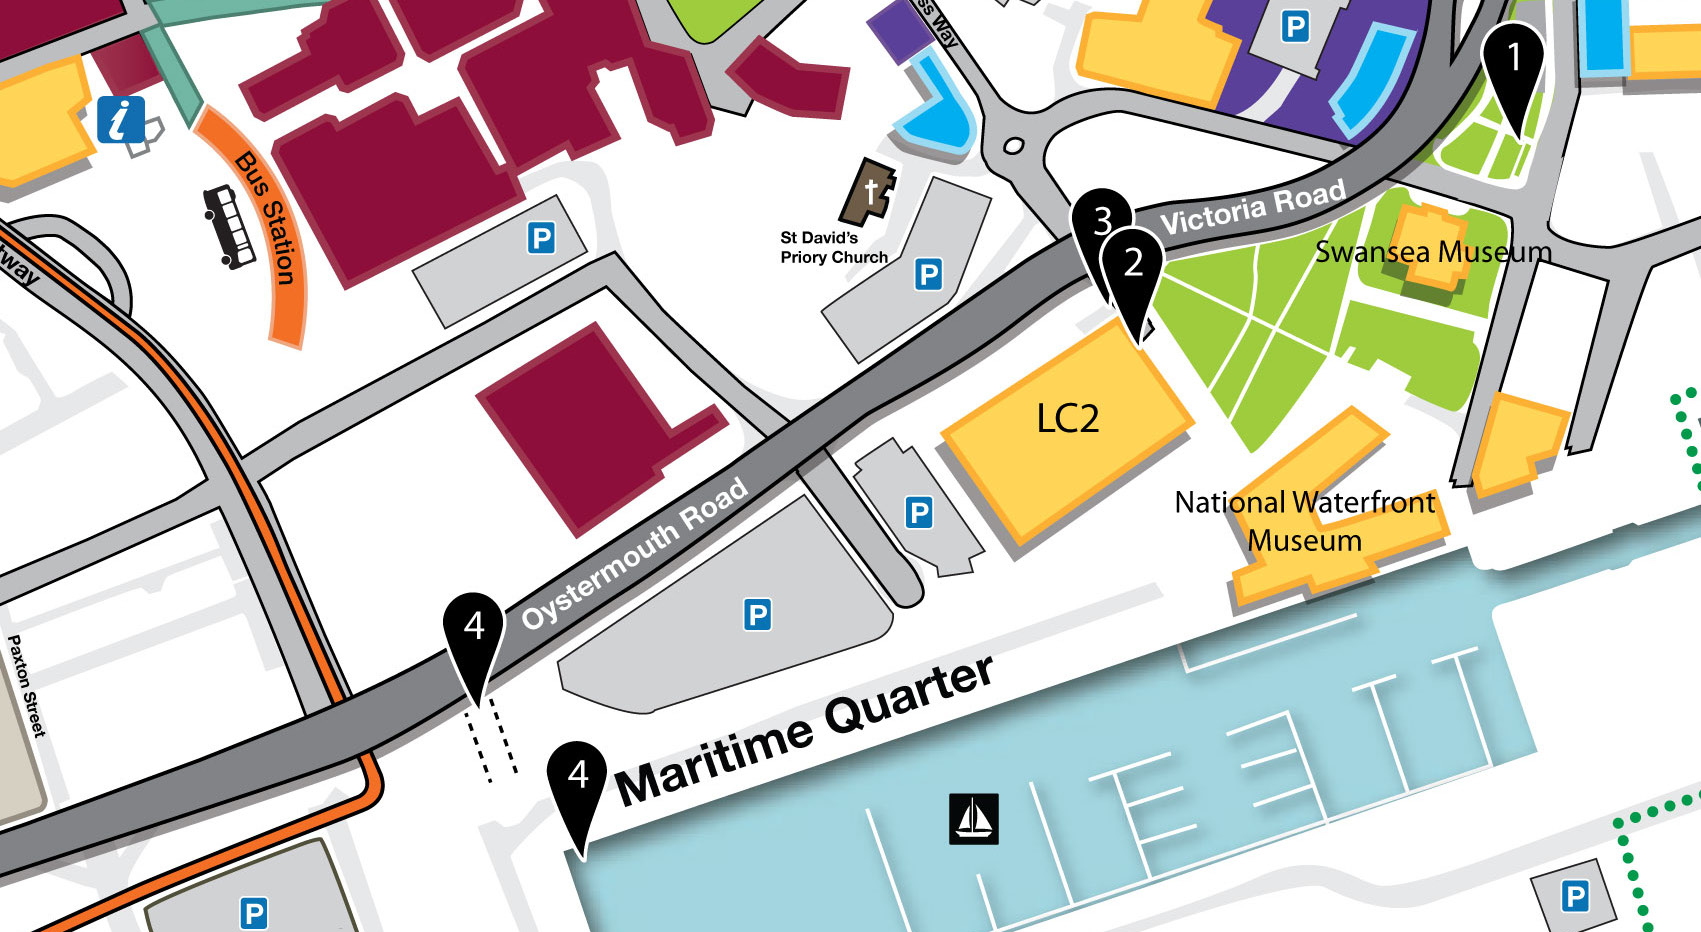 <b><i>Plan showing locations of artworks along Swansea Boulevard</i></b>